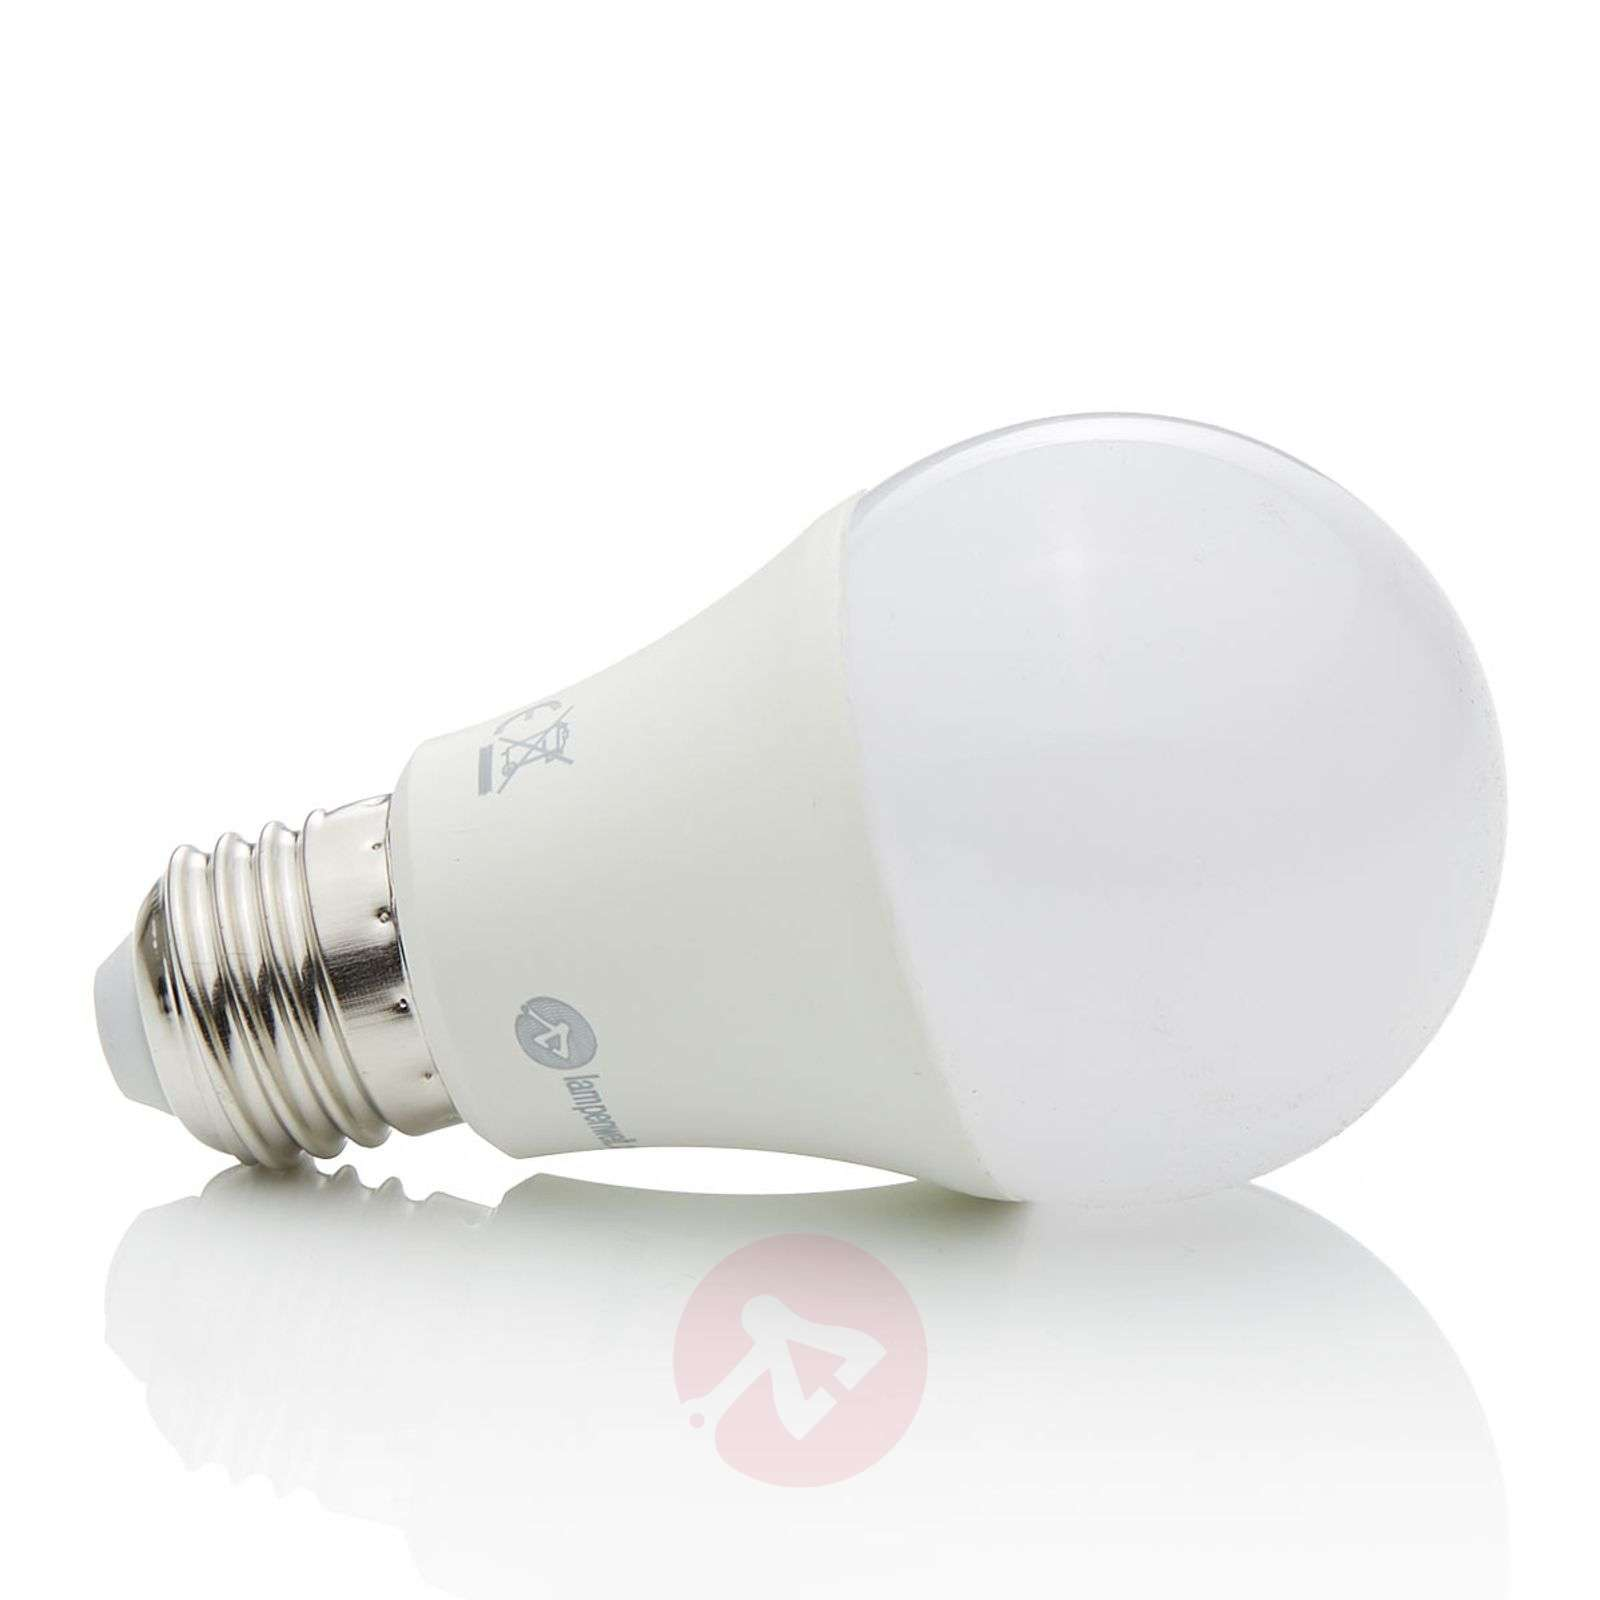 LED lamp RGBW E27 7 W, 500 lumen-9621470-09